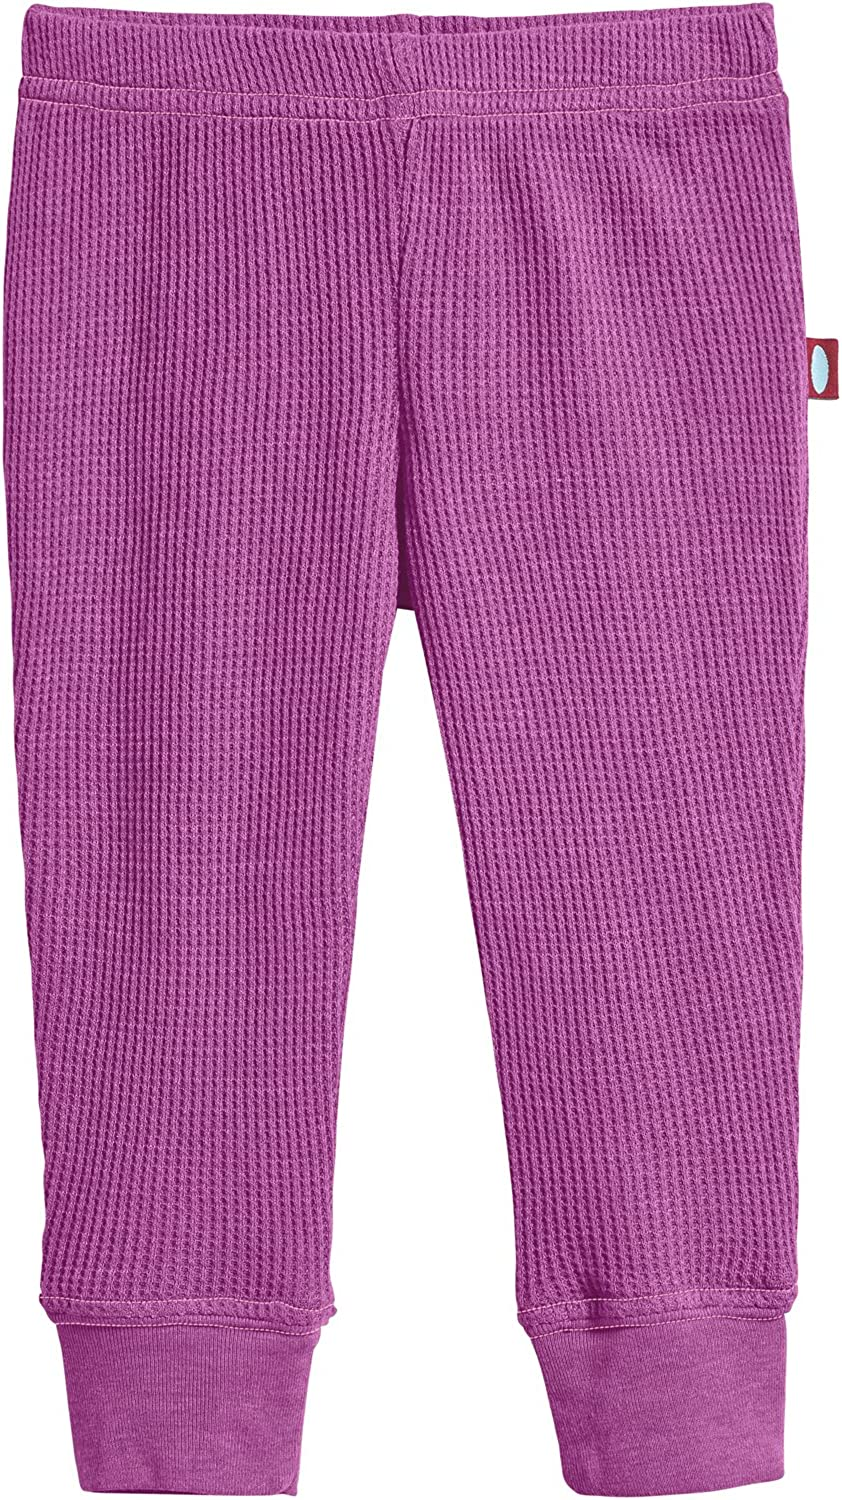 City Threads Unisex Baby Extra Soft Thermal Baby Pants Long Johns Made in USA